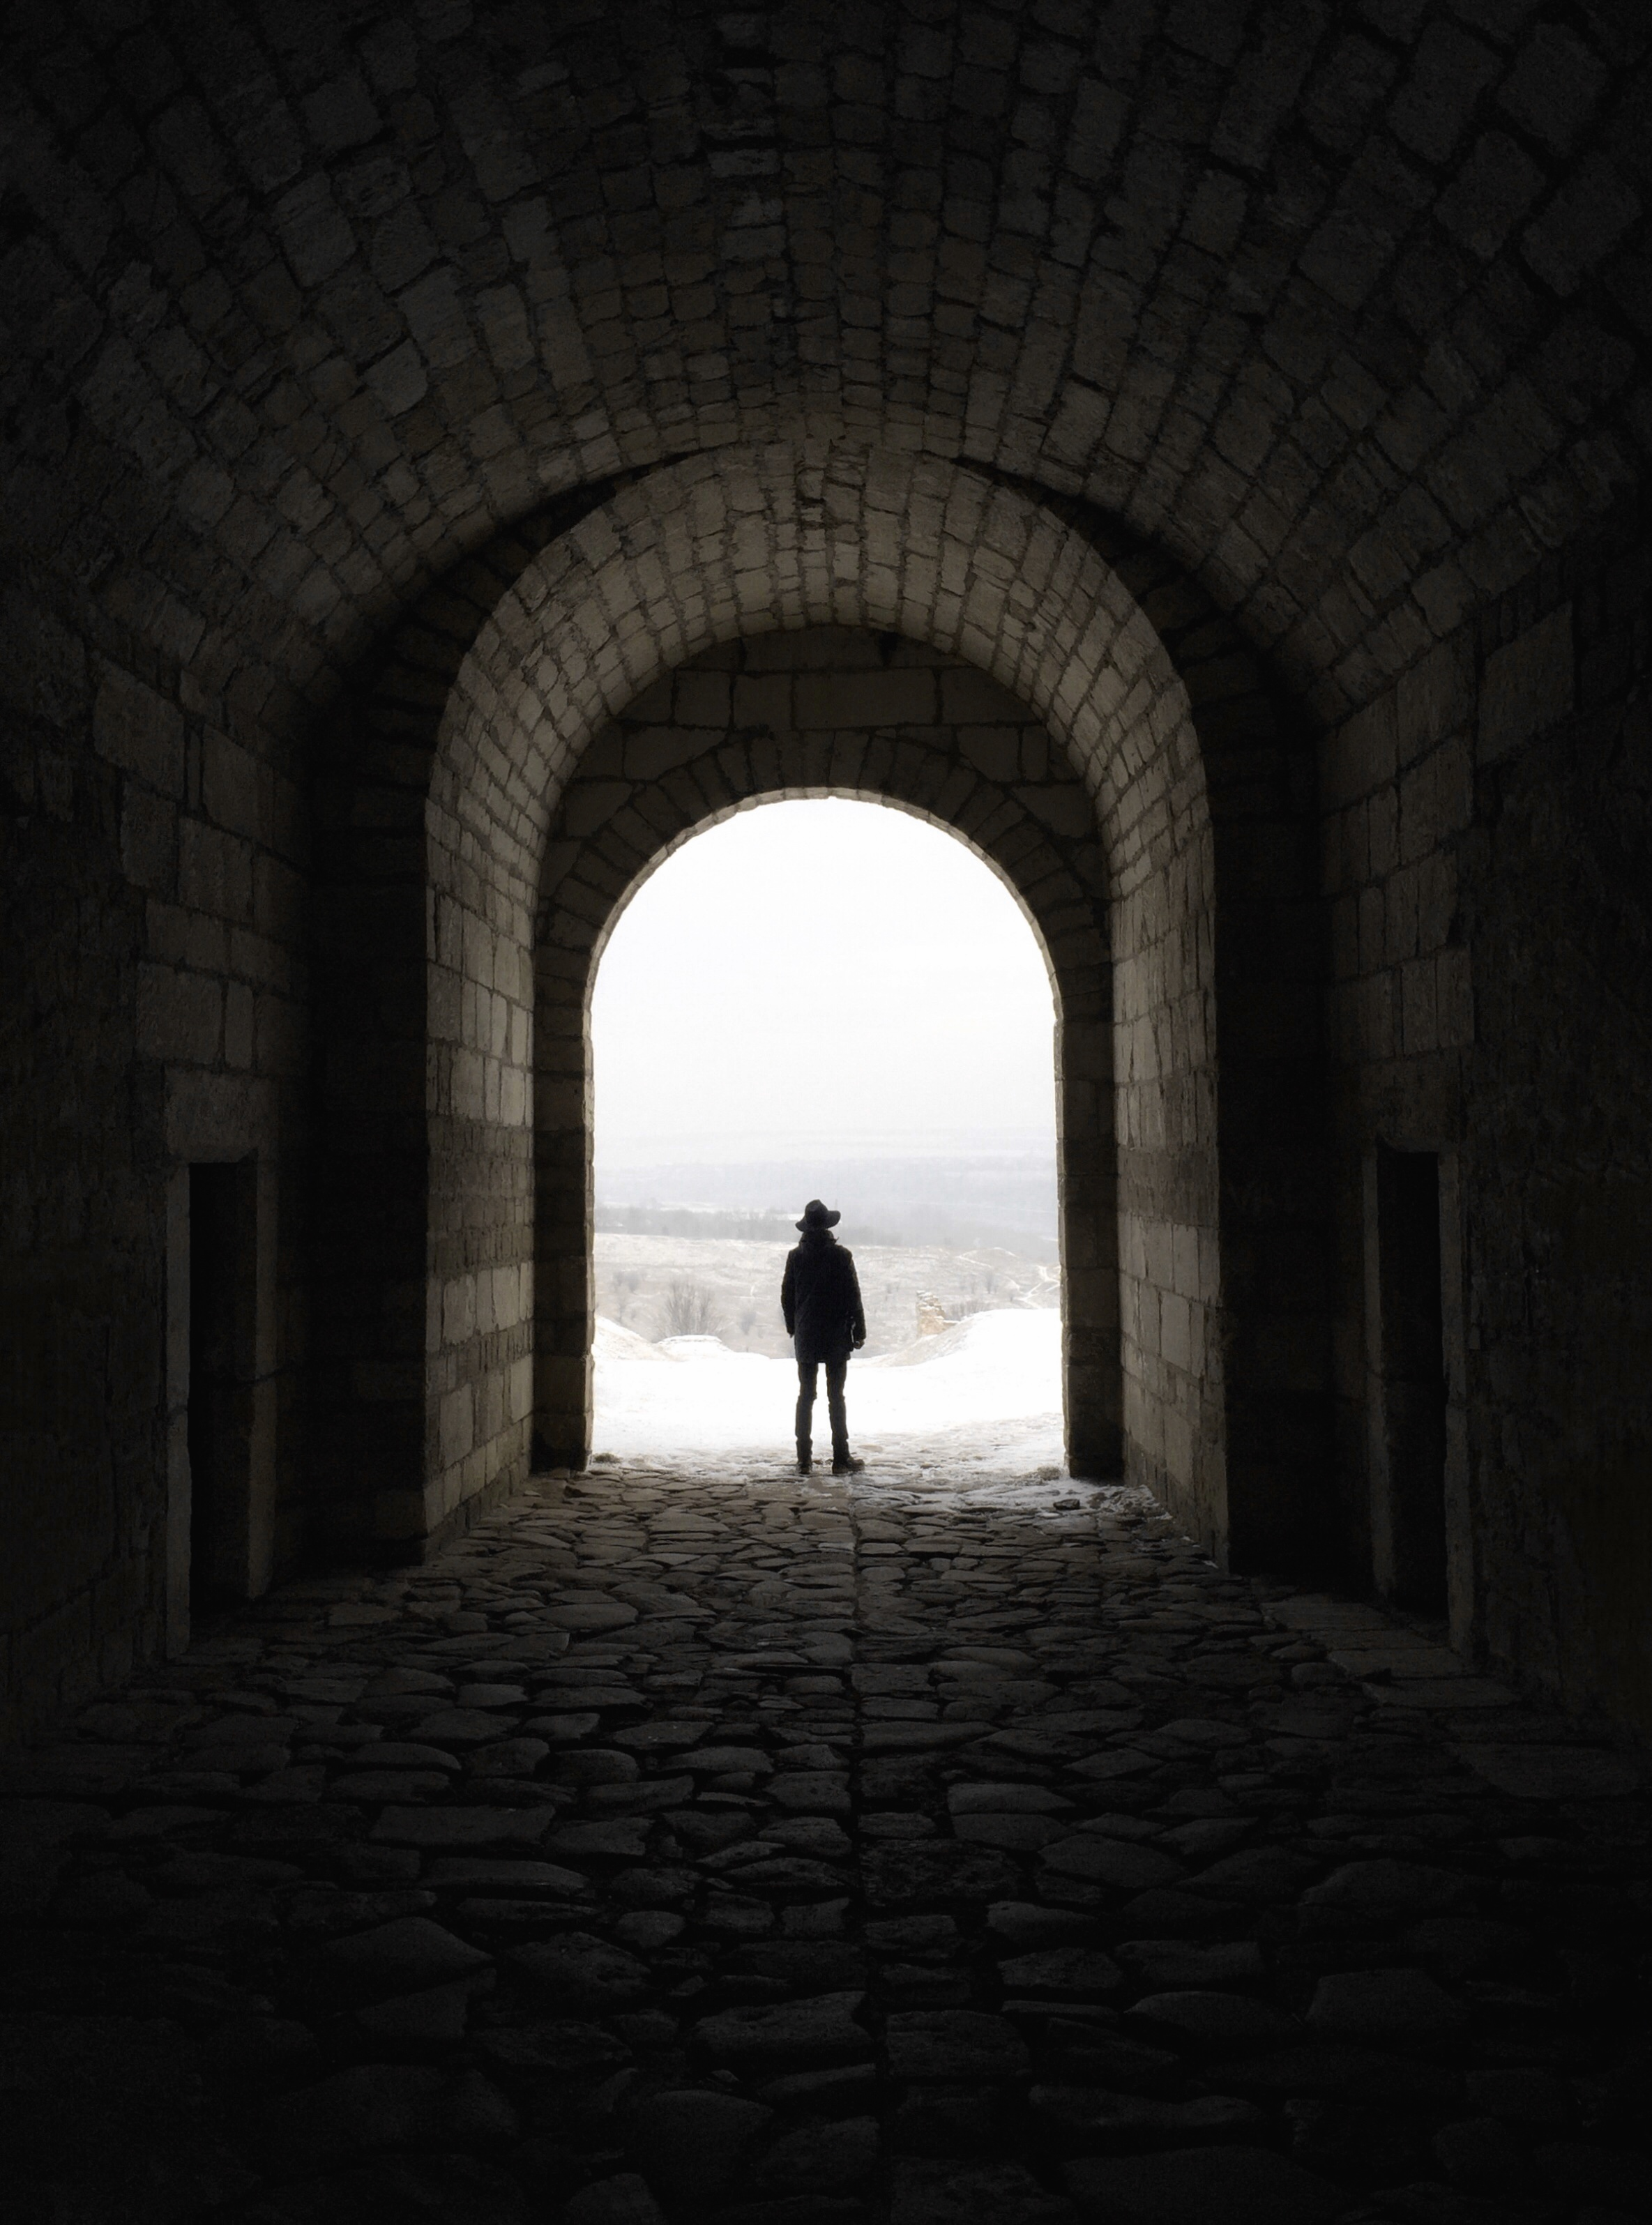 Love Wallpaper Iphone X Greyscale Photography Of Man Walking On Tunnel 183 Free